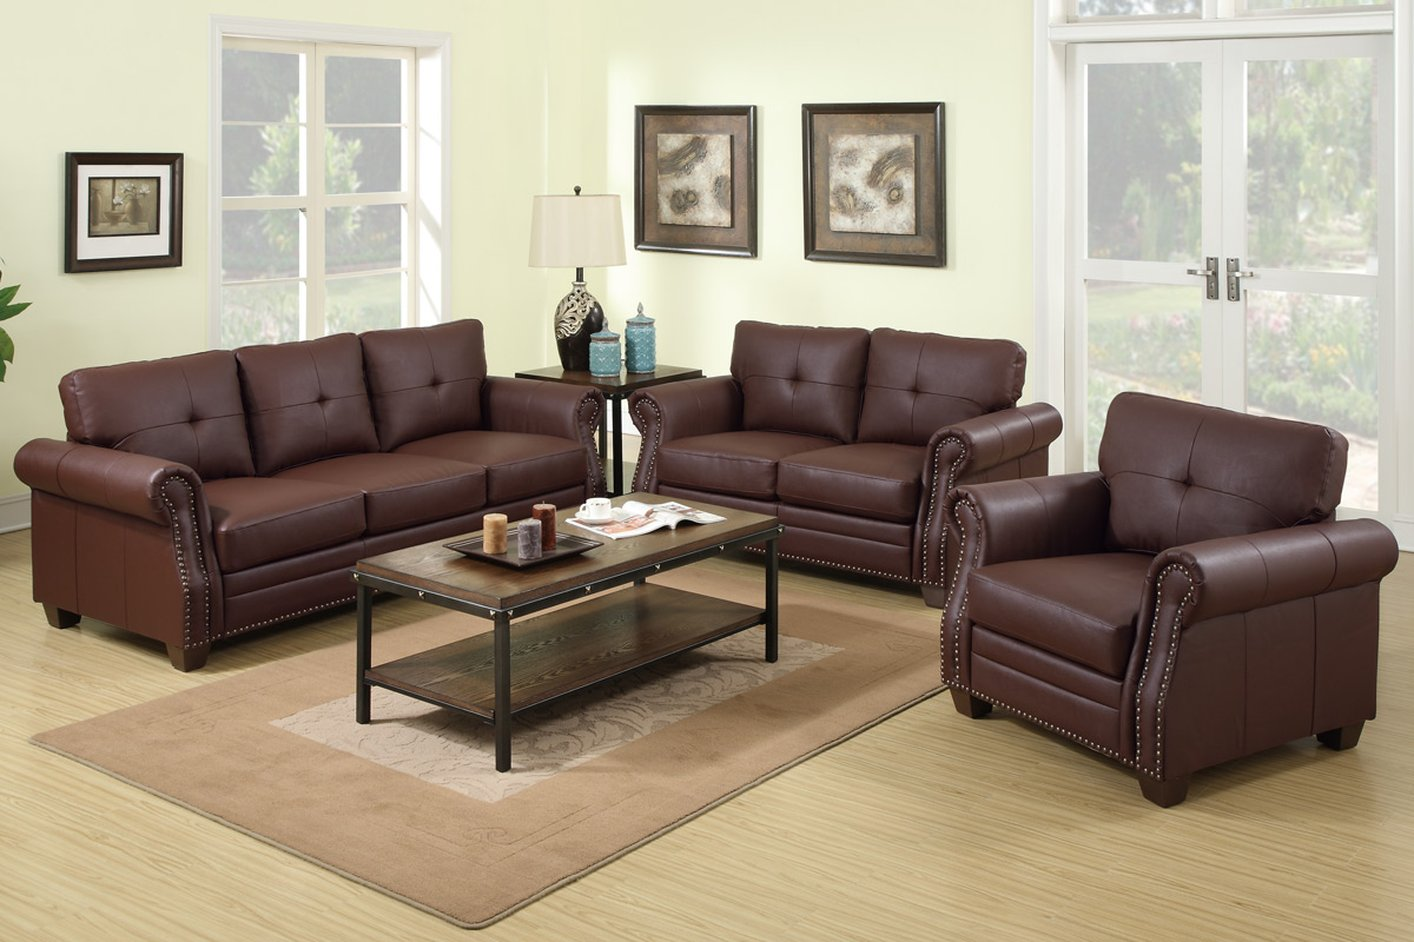 Leather Couch And Sofa Set Poundex Baron F7799 Brown Leather Sofa And Loveseat Set